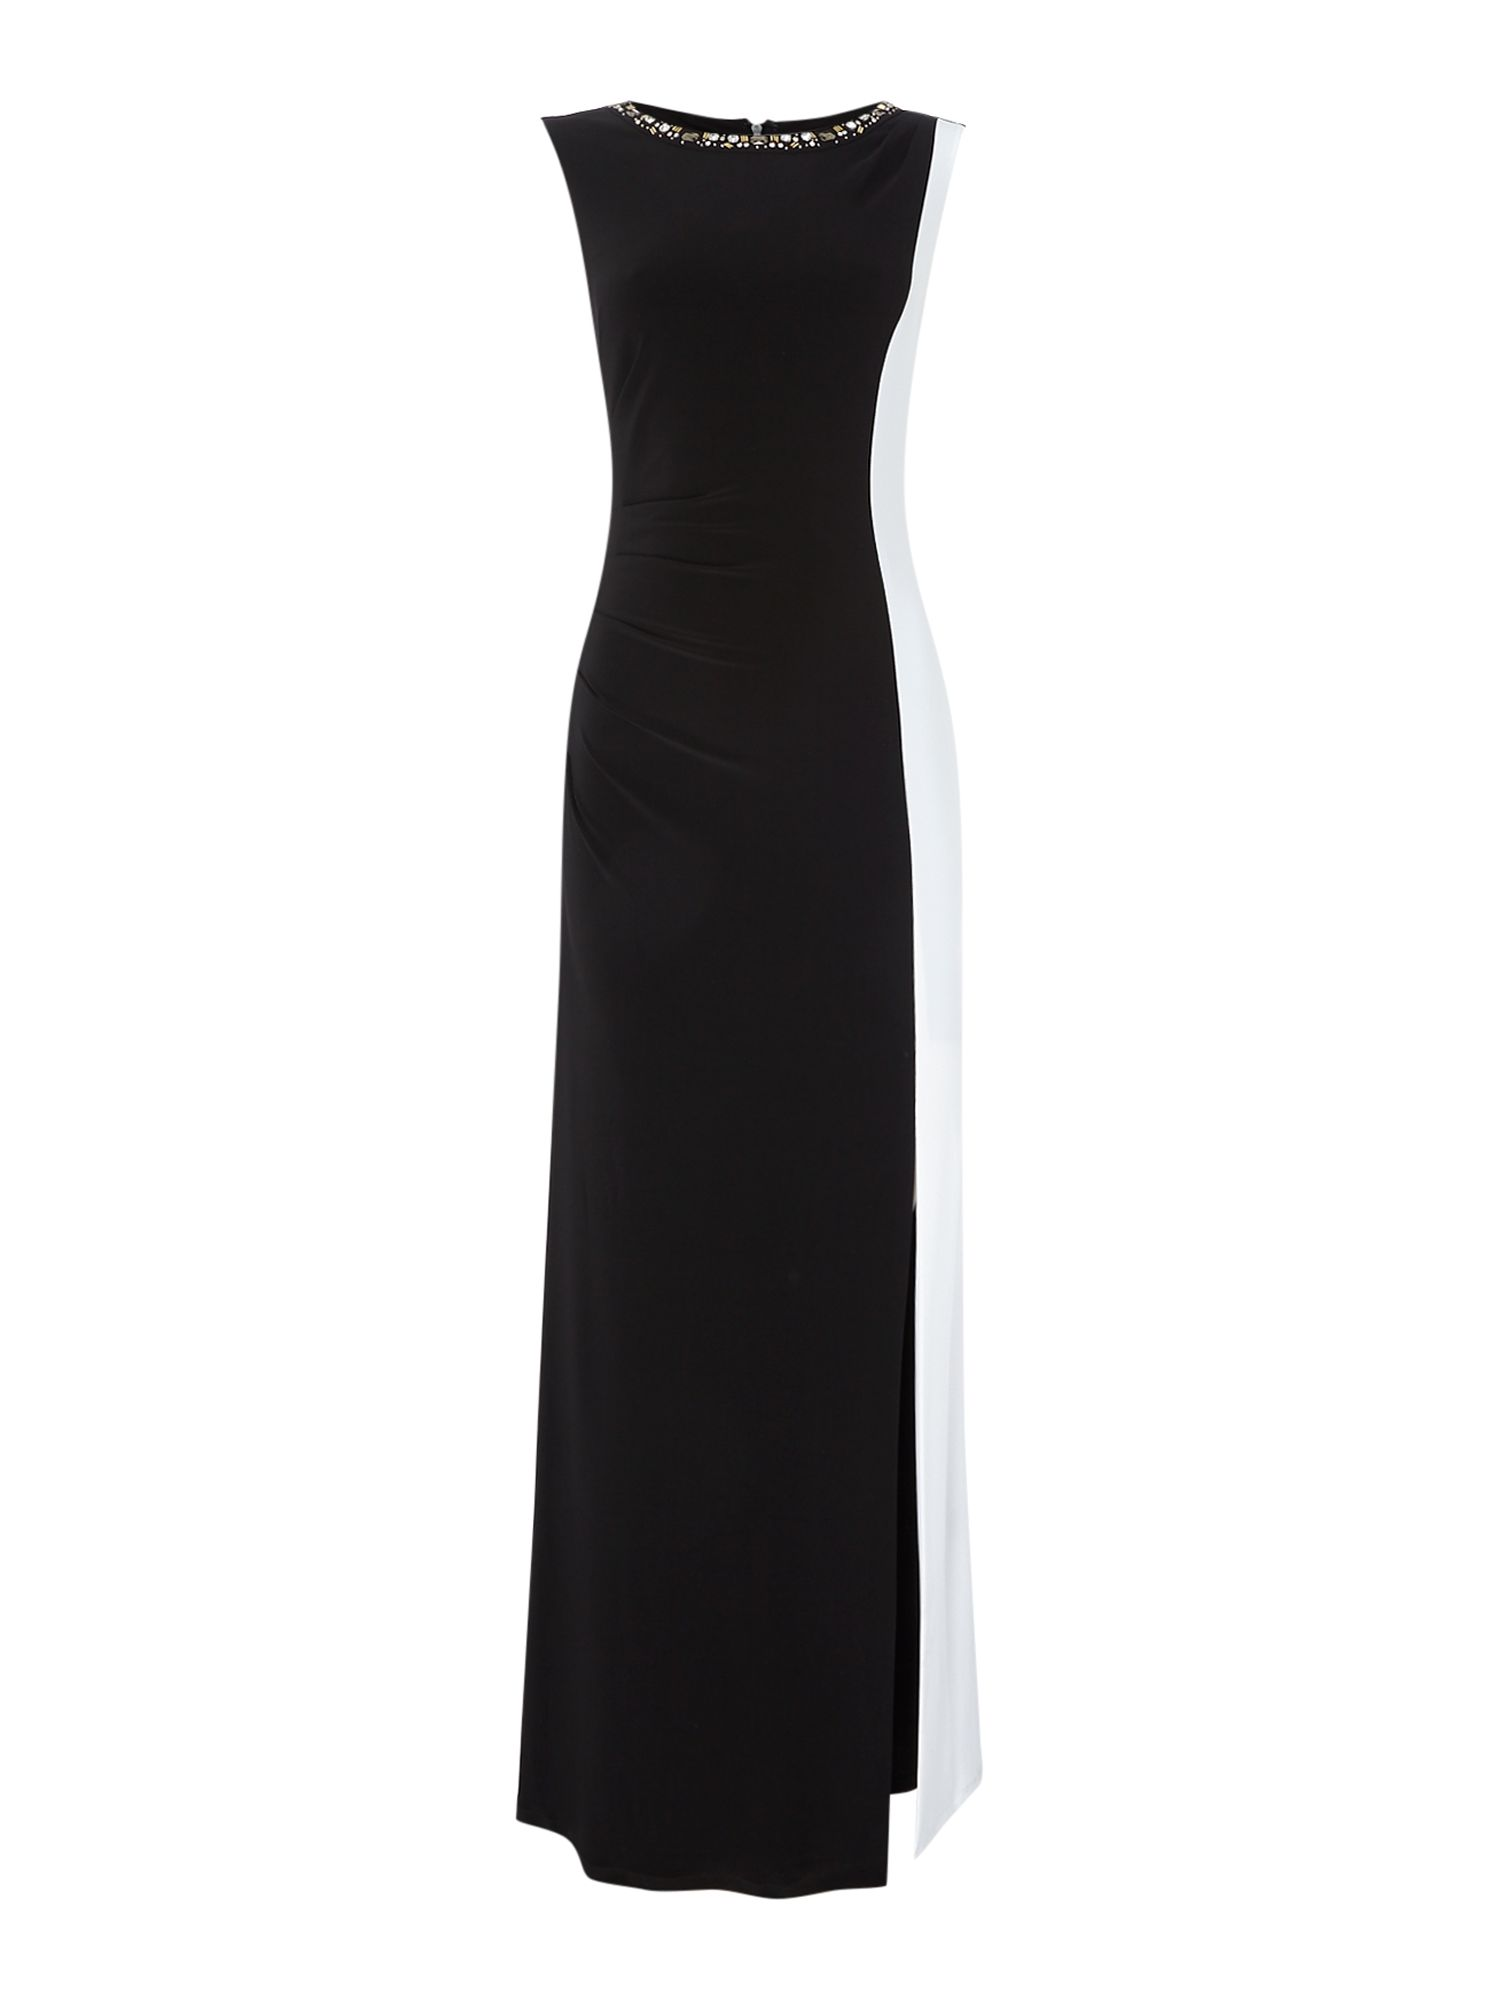 JS Collections Colour block gown with embellished neckline, Black/White